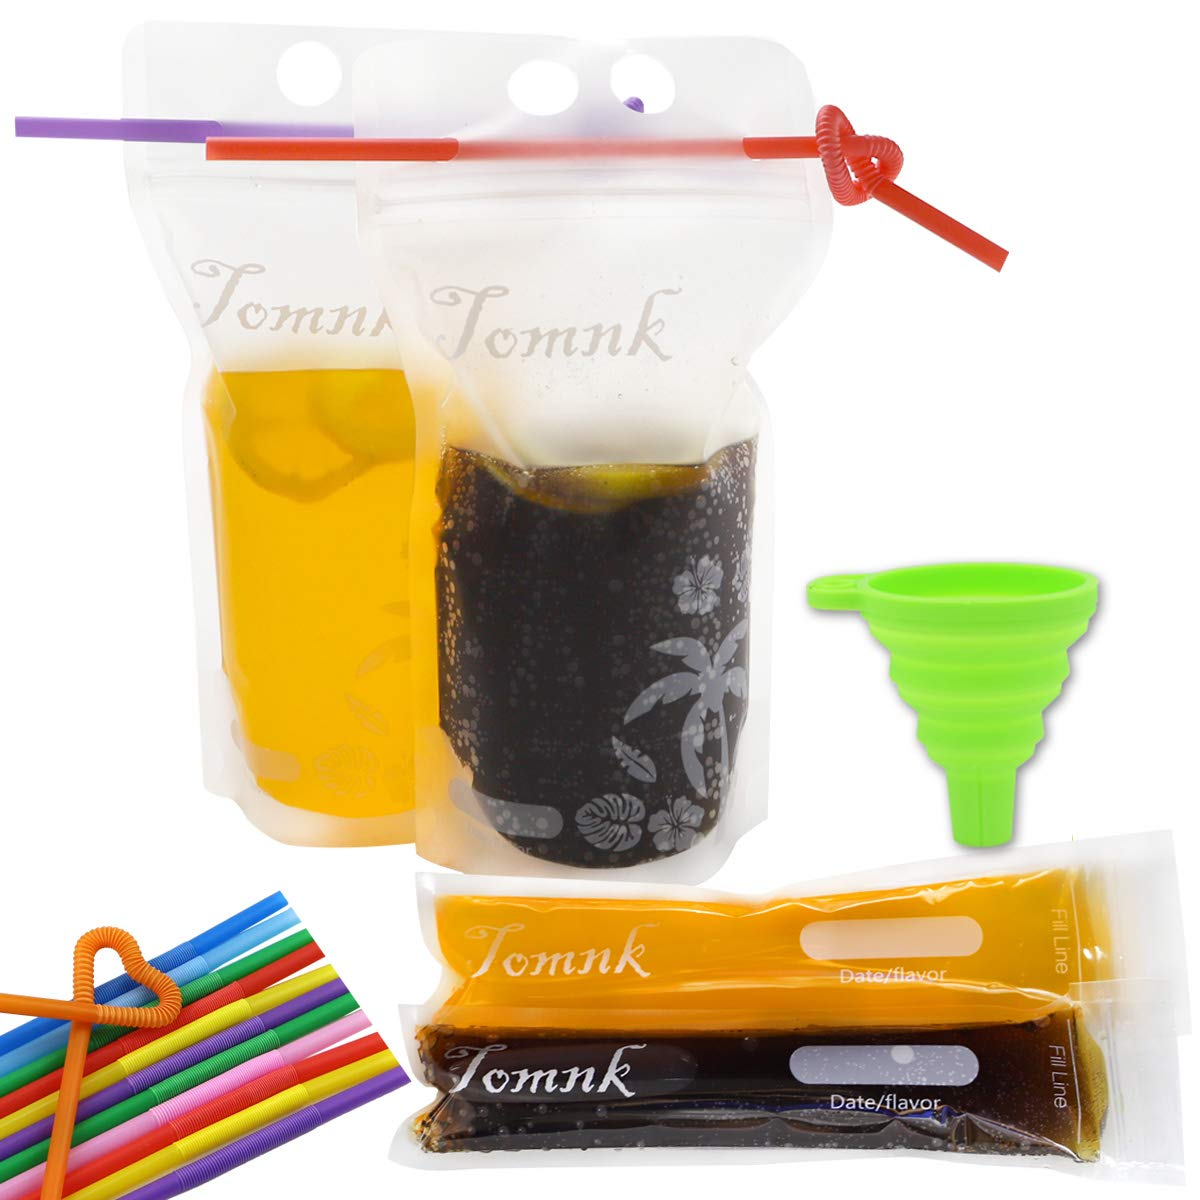 Tomnk 201Pcs Disposable Pouches Sets - 100Pcs Disposable DIY Ice Pop Mold Bags and 50Pcs Zipper Plastic Pouches Drink Bags with 50Pcs Straws & Funnel Included